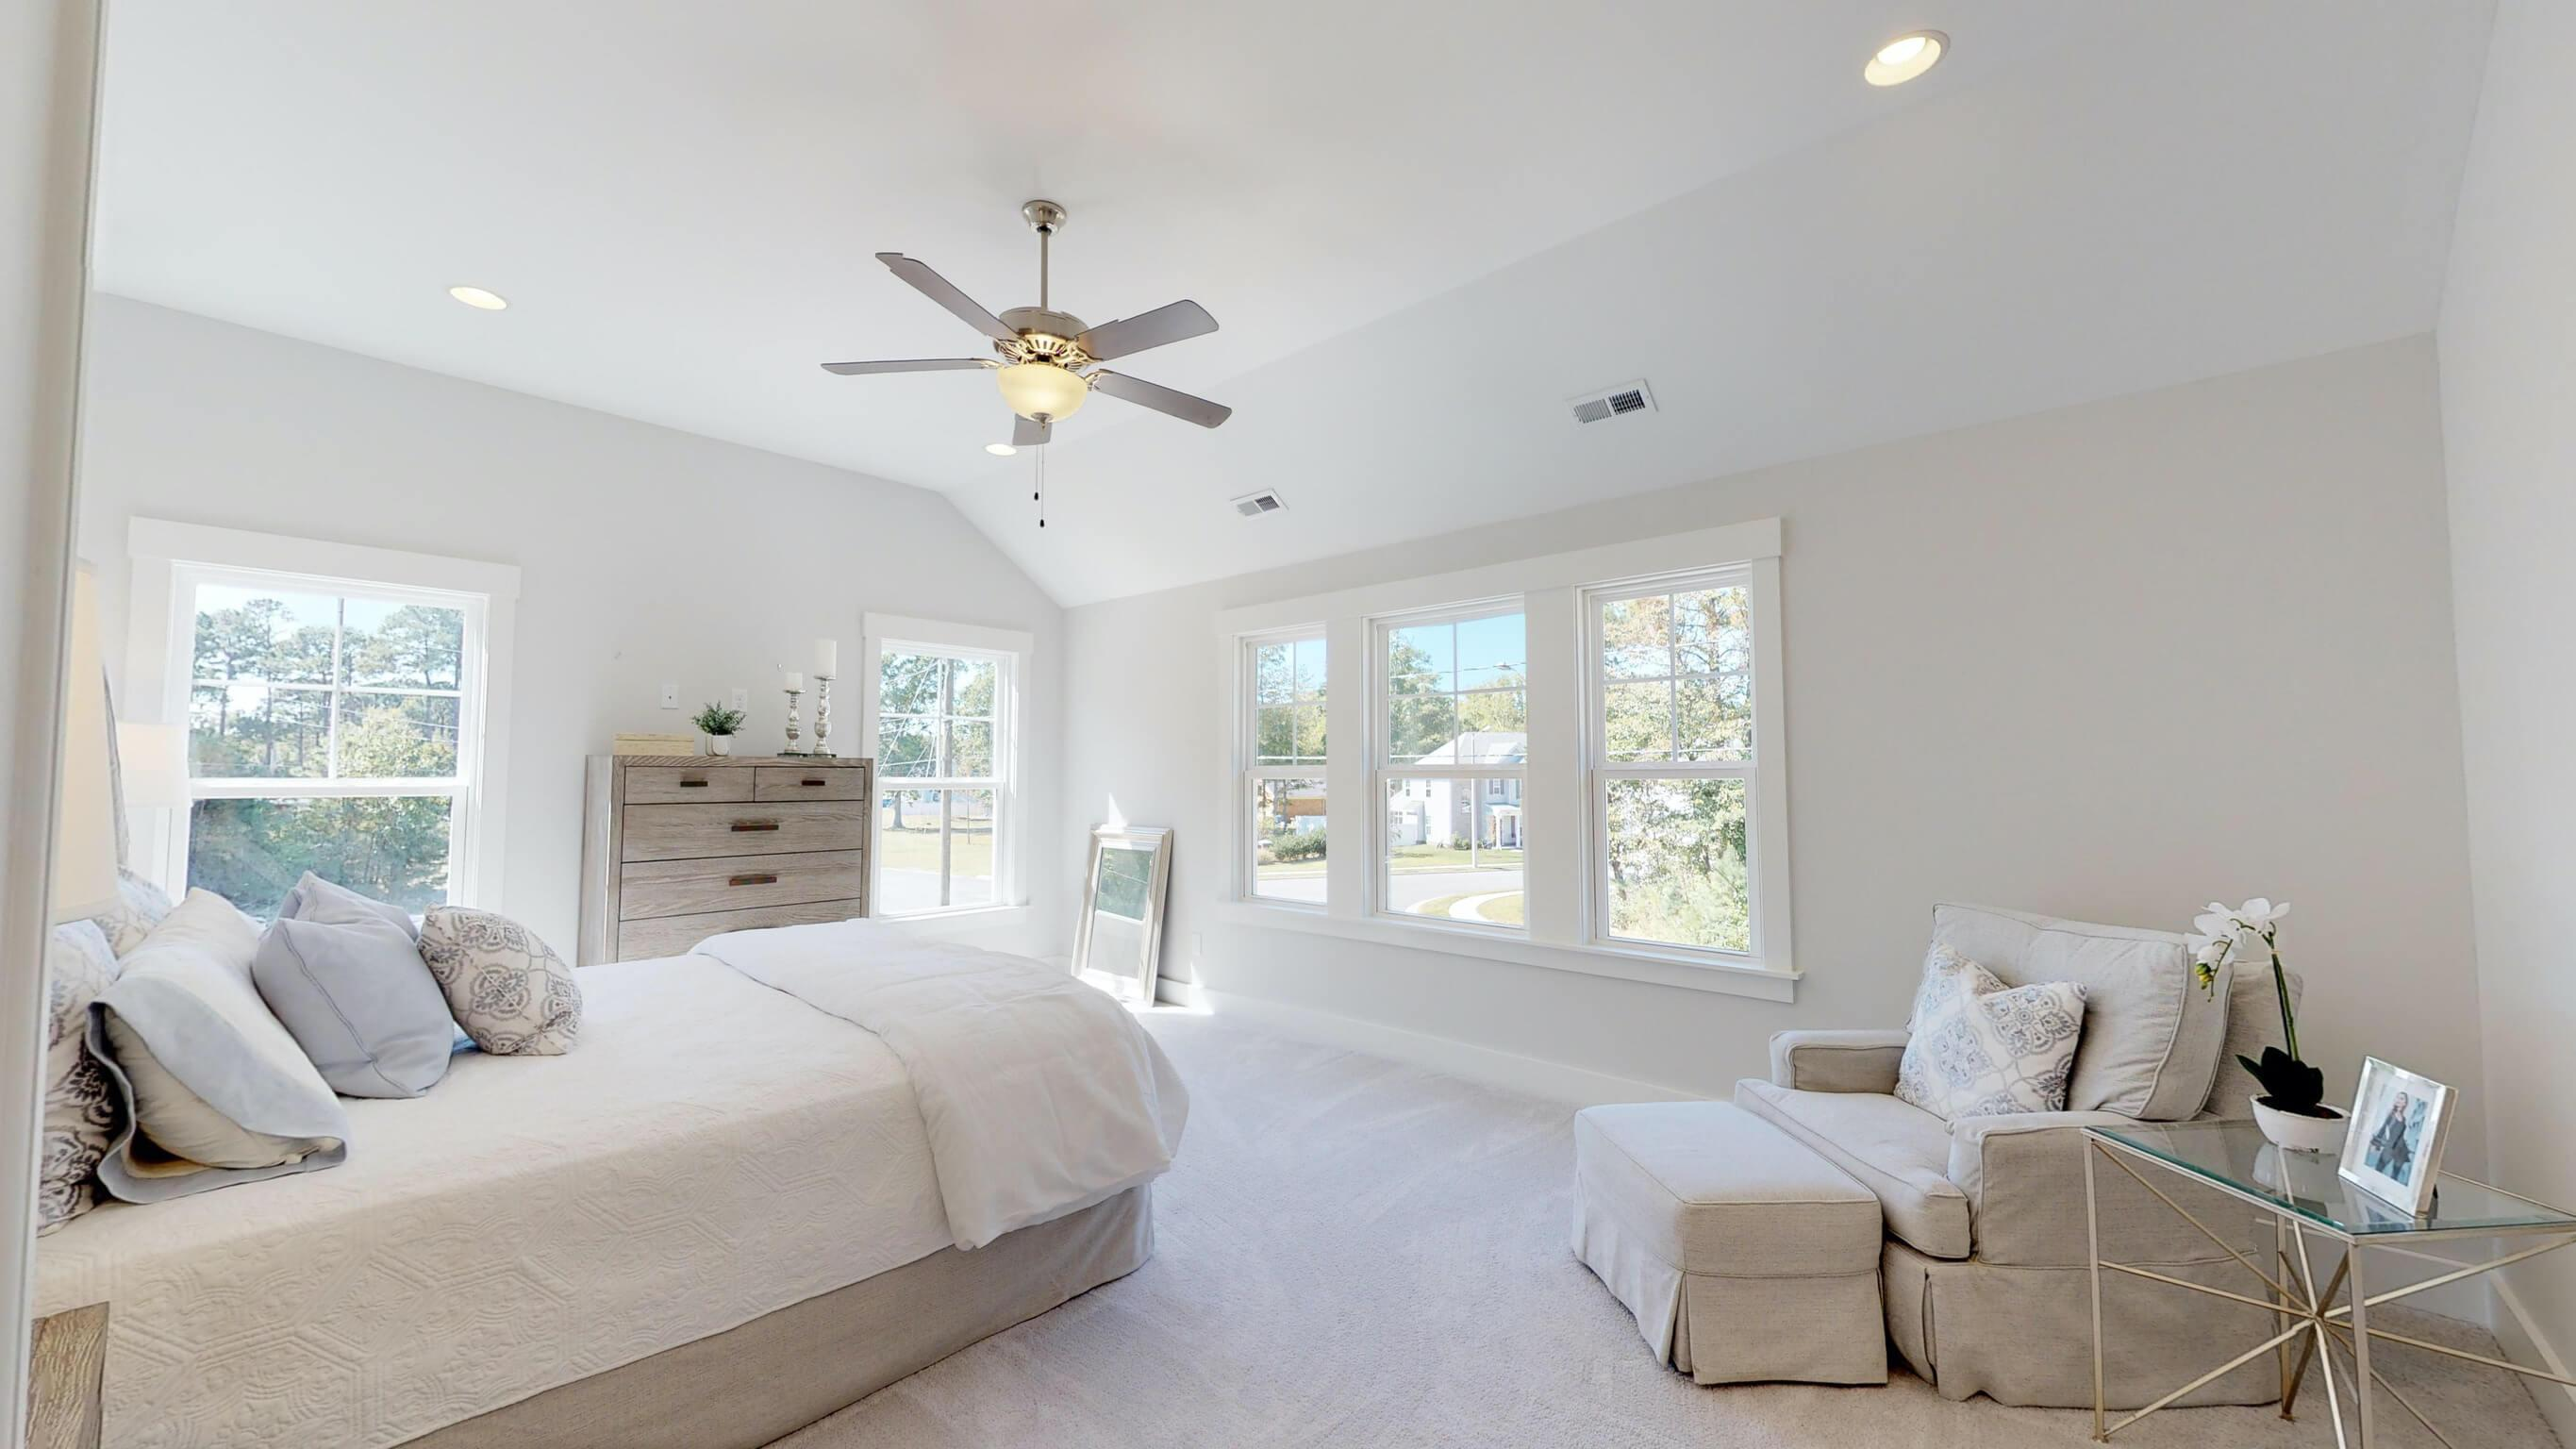 Bedroom featured in the Albemarle By Stephen Alexander Homes in Outer Banks, NC